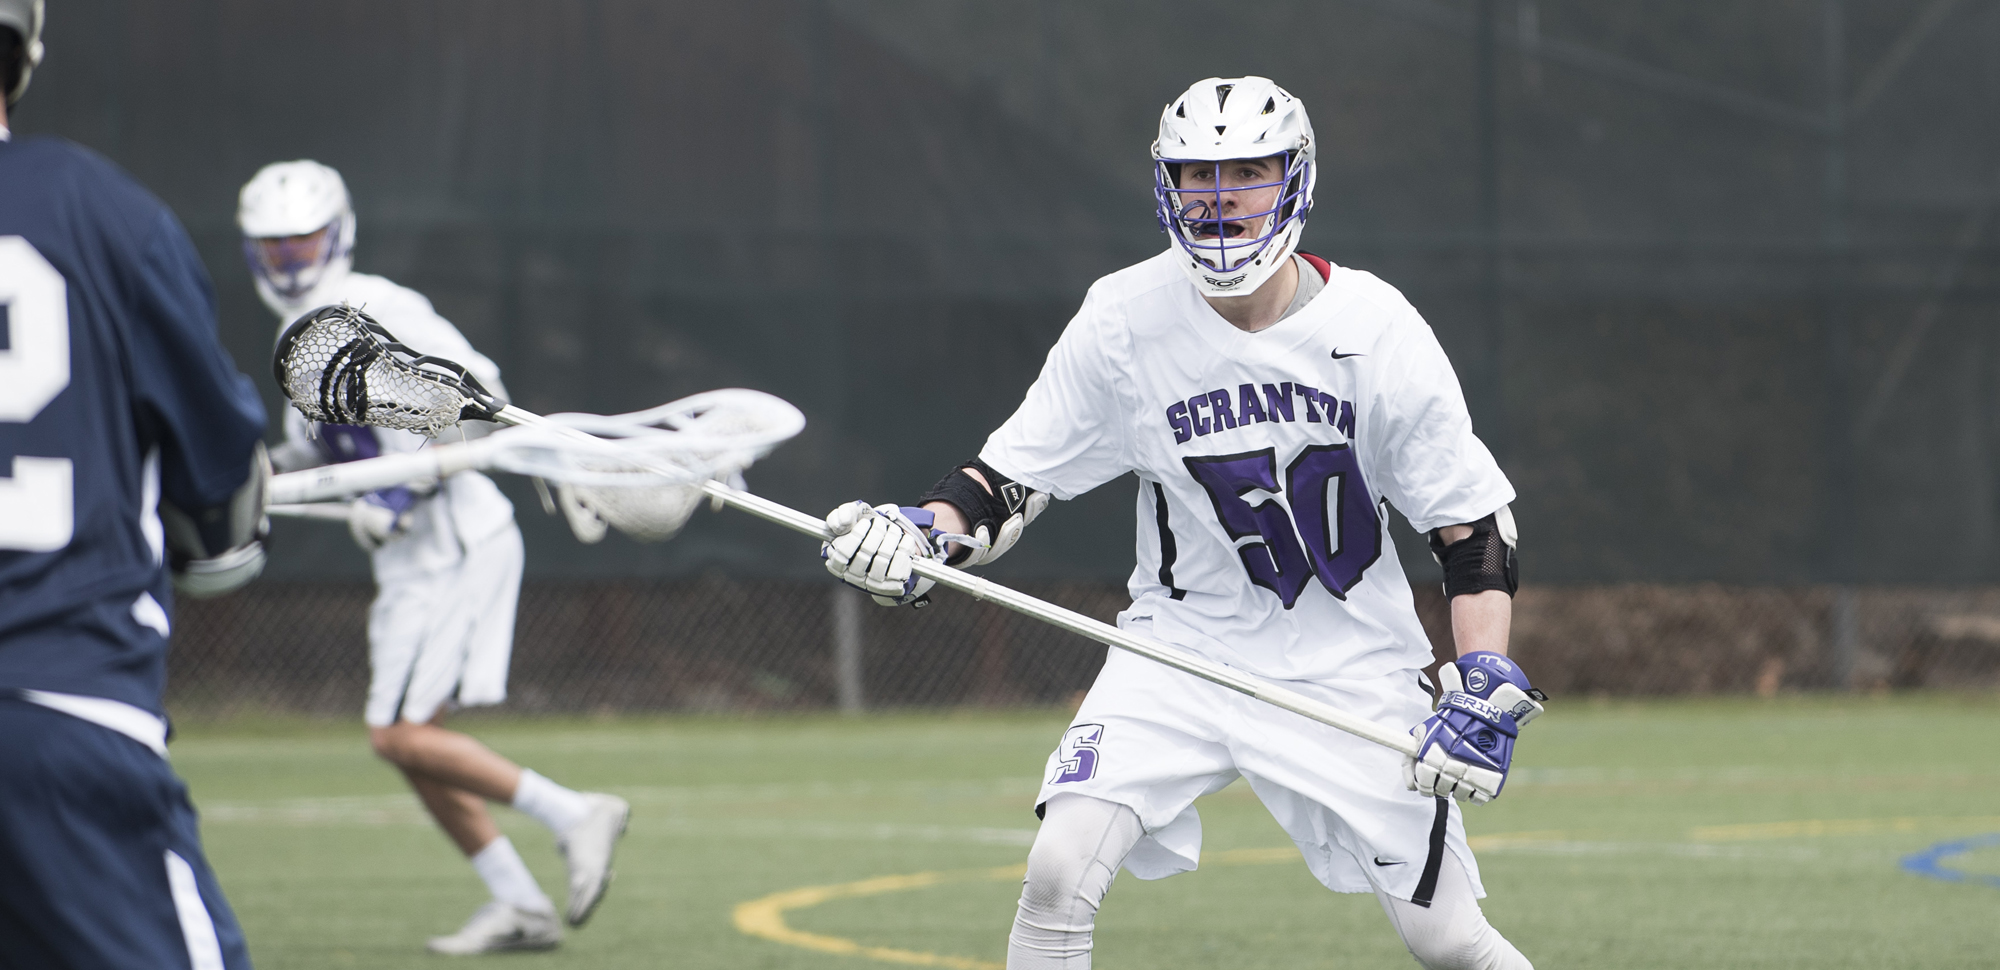 Junior Adam Maiale had nine ground balls and four caused turnovers in the Royals' win on Saturday.